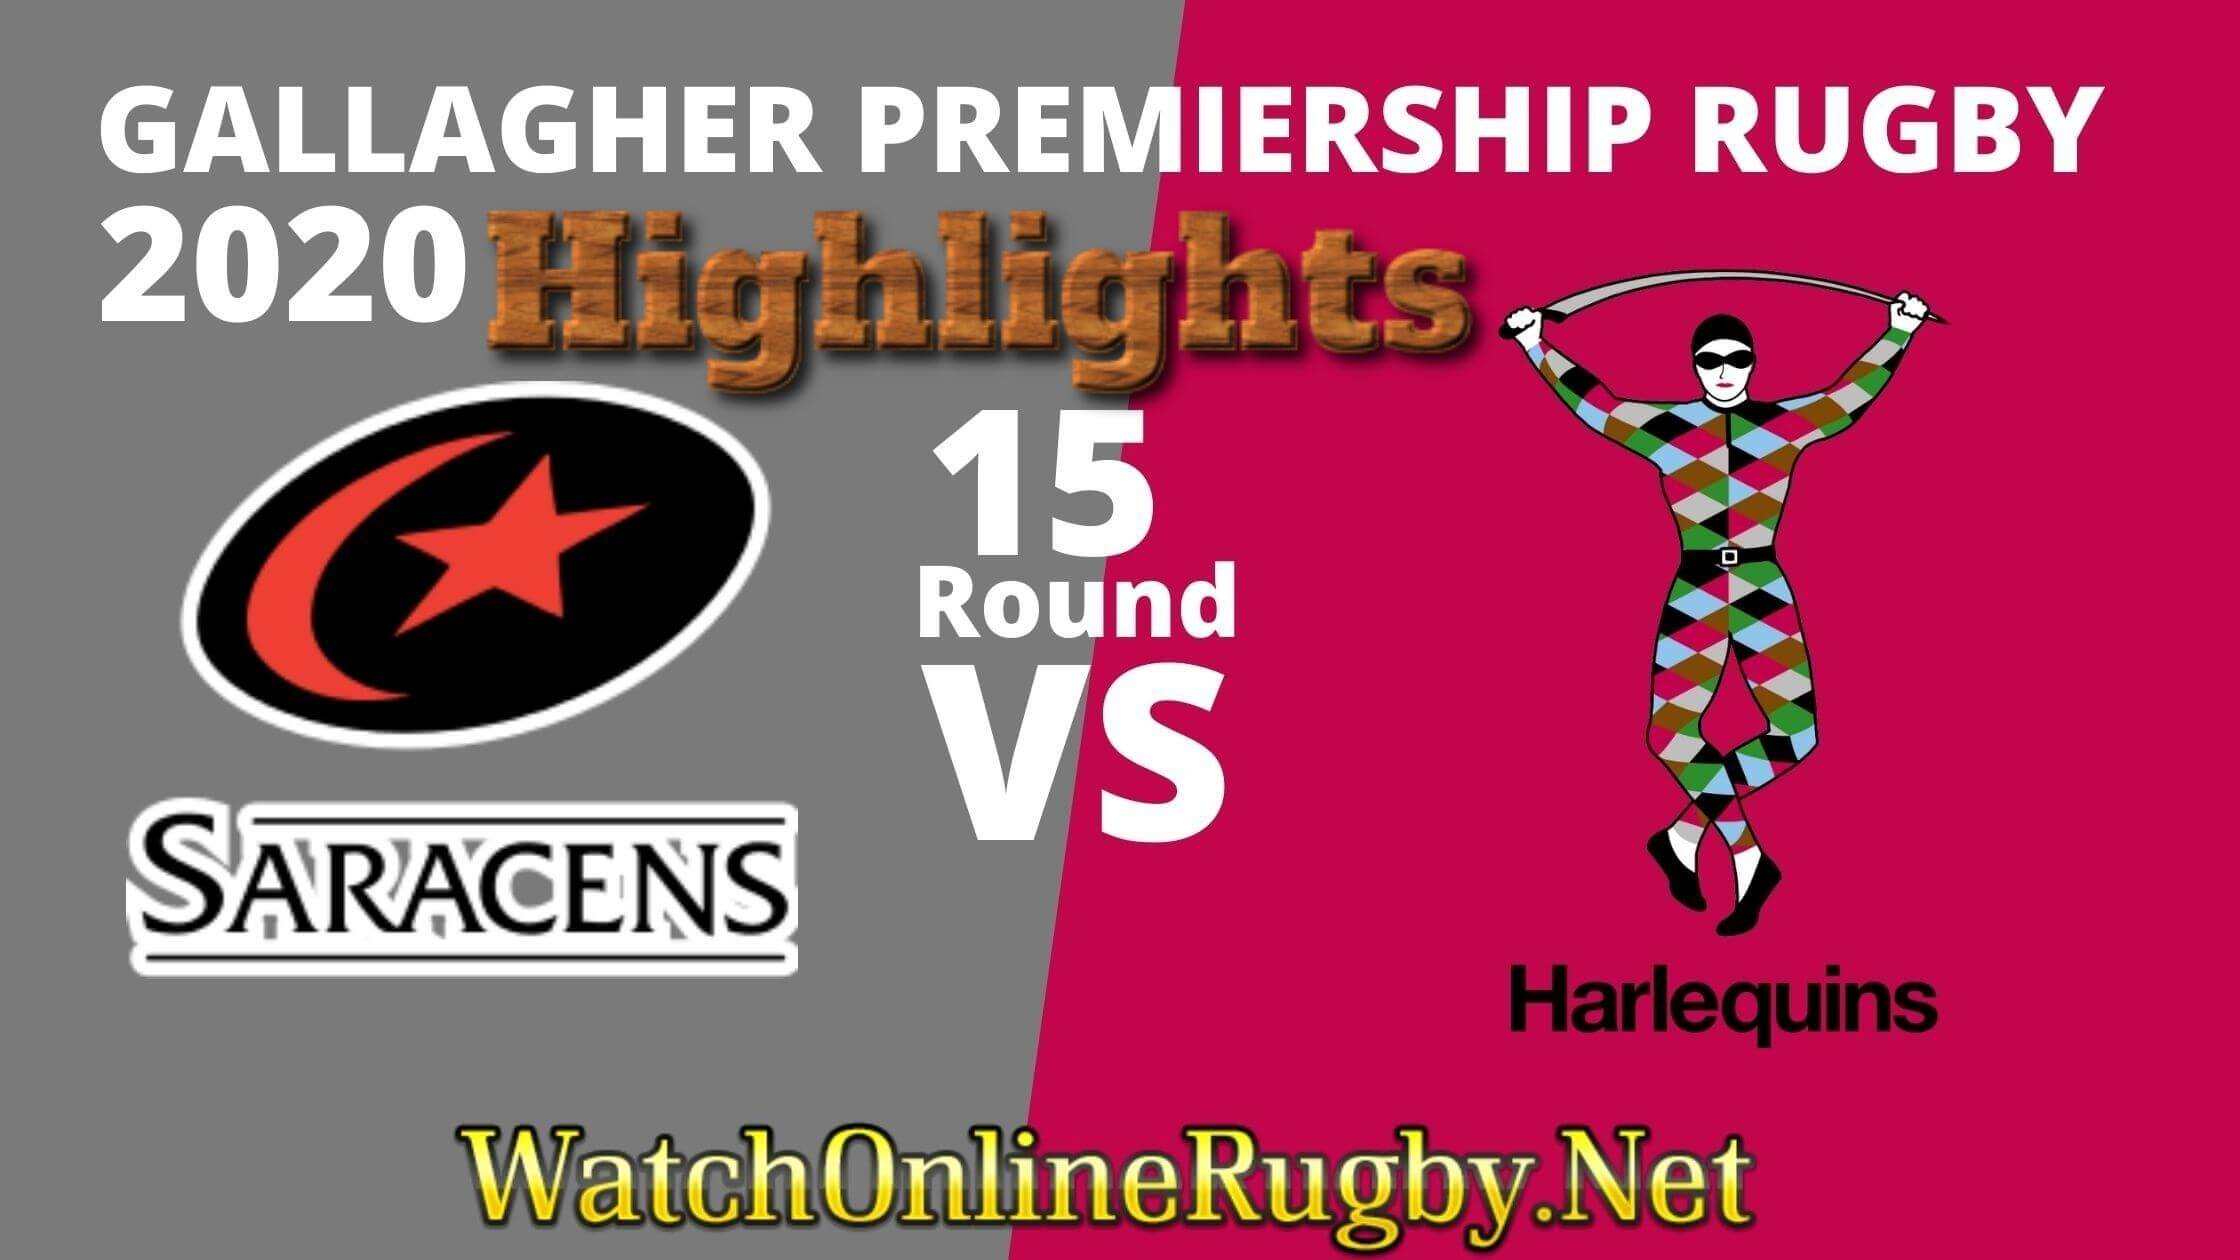 Saracens Vs Harlequins Highlights 2020 Rd 15